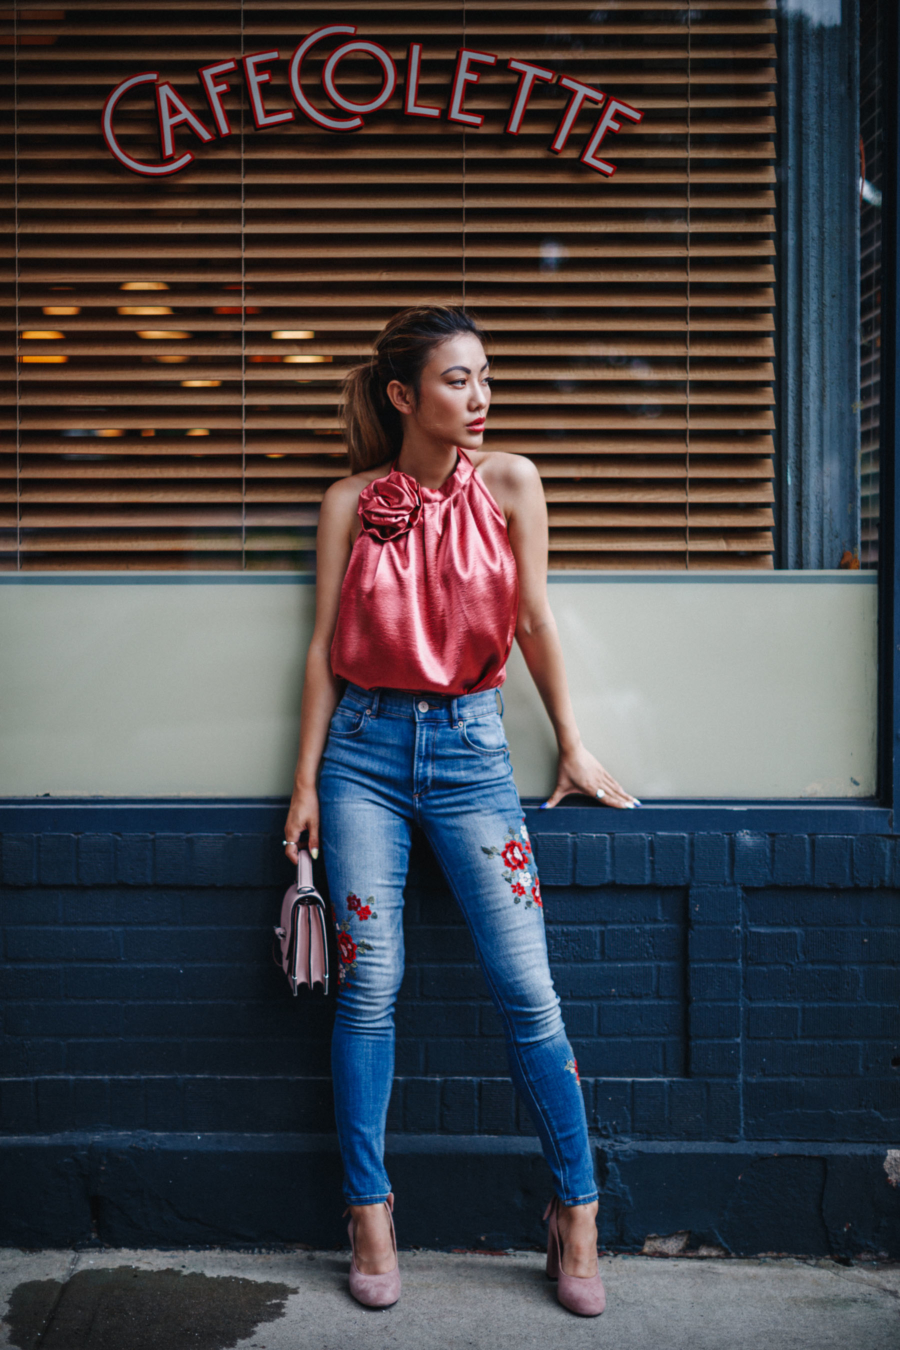 Embroidered Denim and Satin Blouse - Denim Details that Make Jeans Even Hotter this Summer // NotJessFashion.com